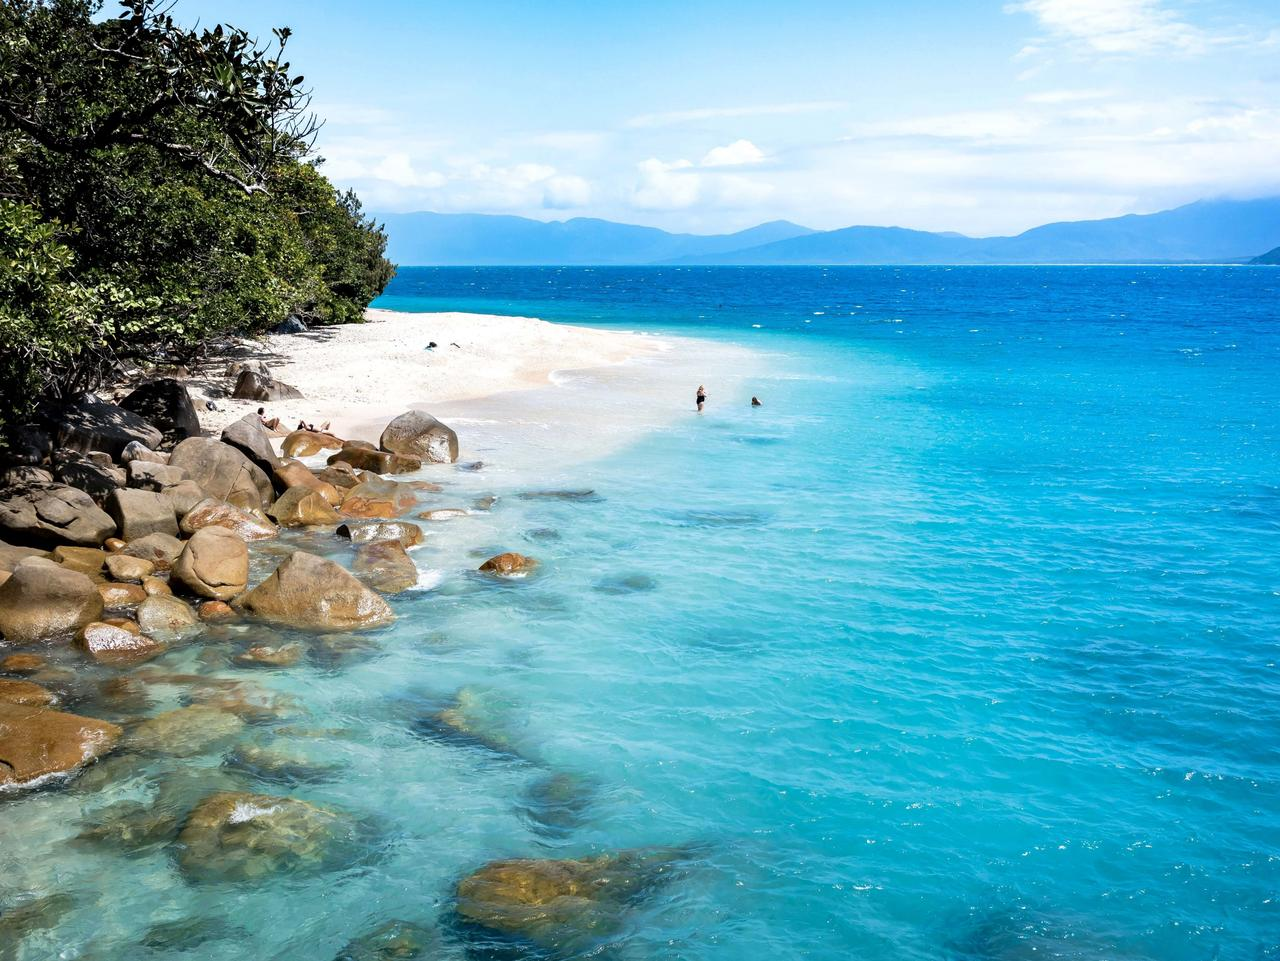 Australia's 101 Best Beaches includes Nudey Beach at Number 2